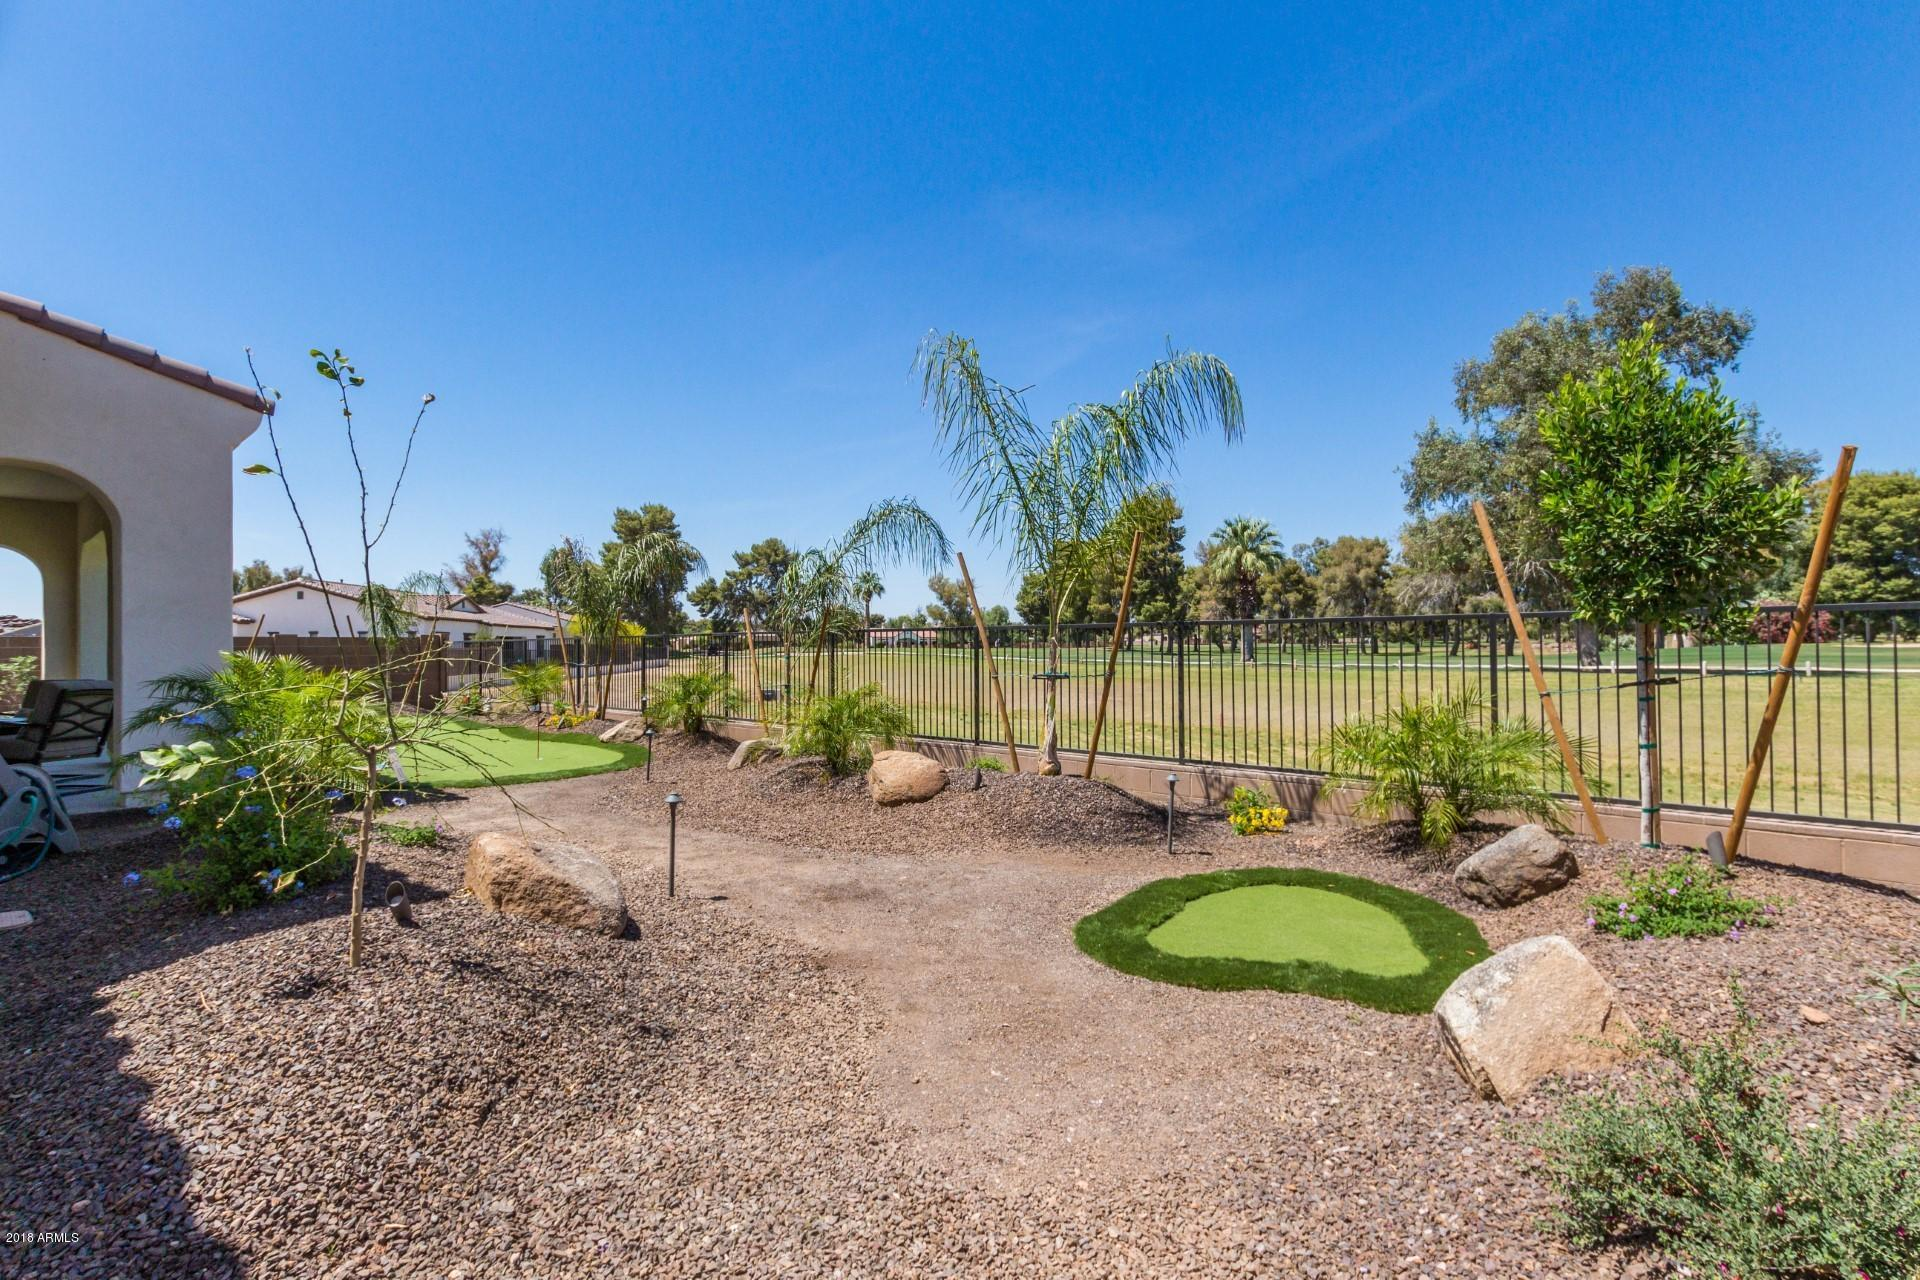 Litchfield Park AZ 85340 Photo 27